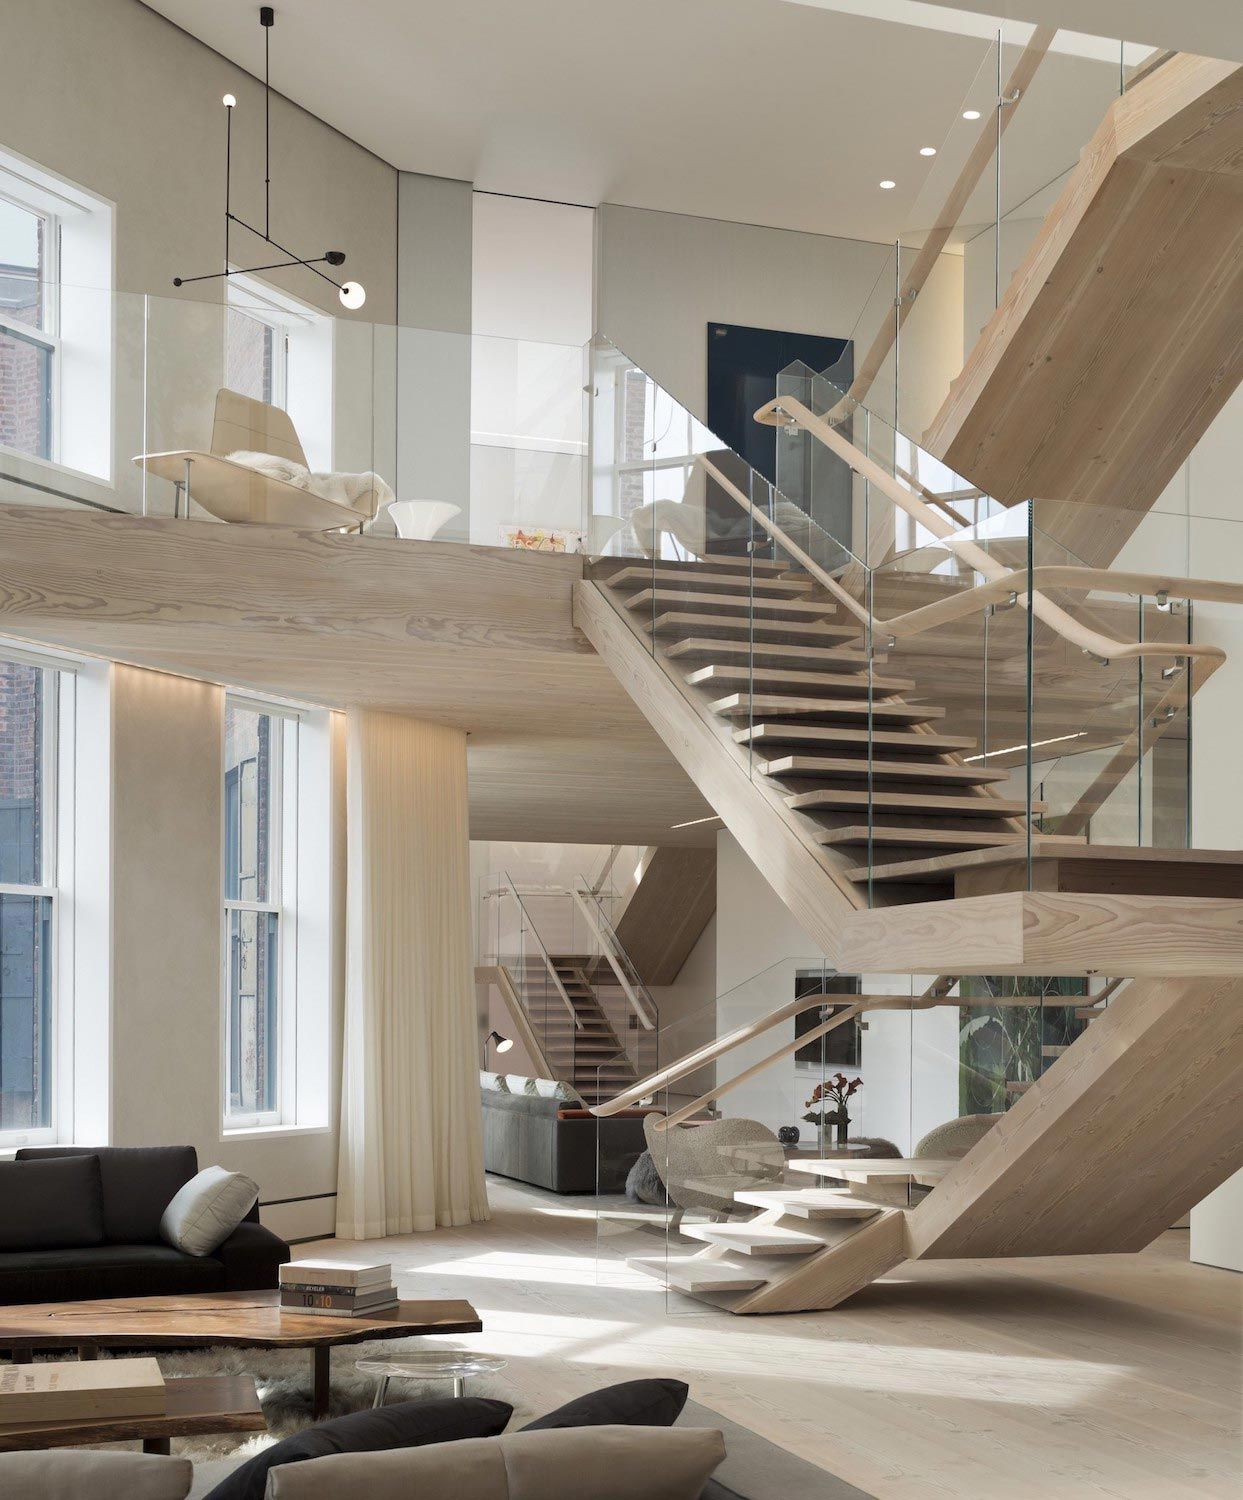 Penthouse loft residence in the SoHo Cast Iron Historic District ...